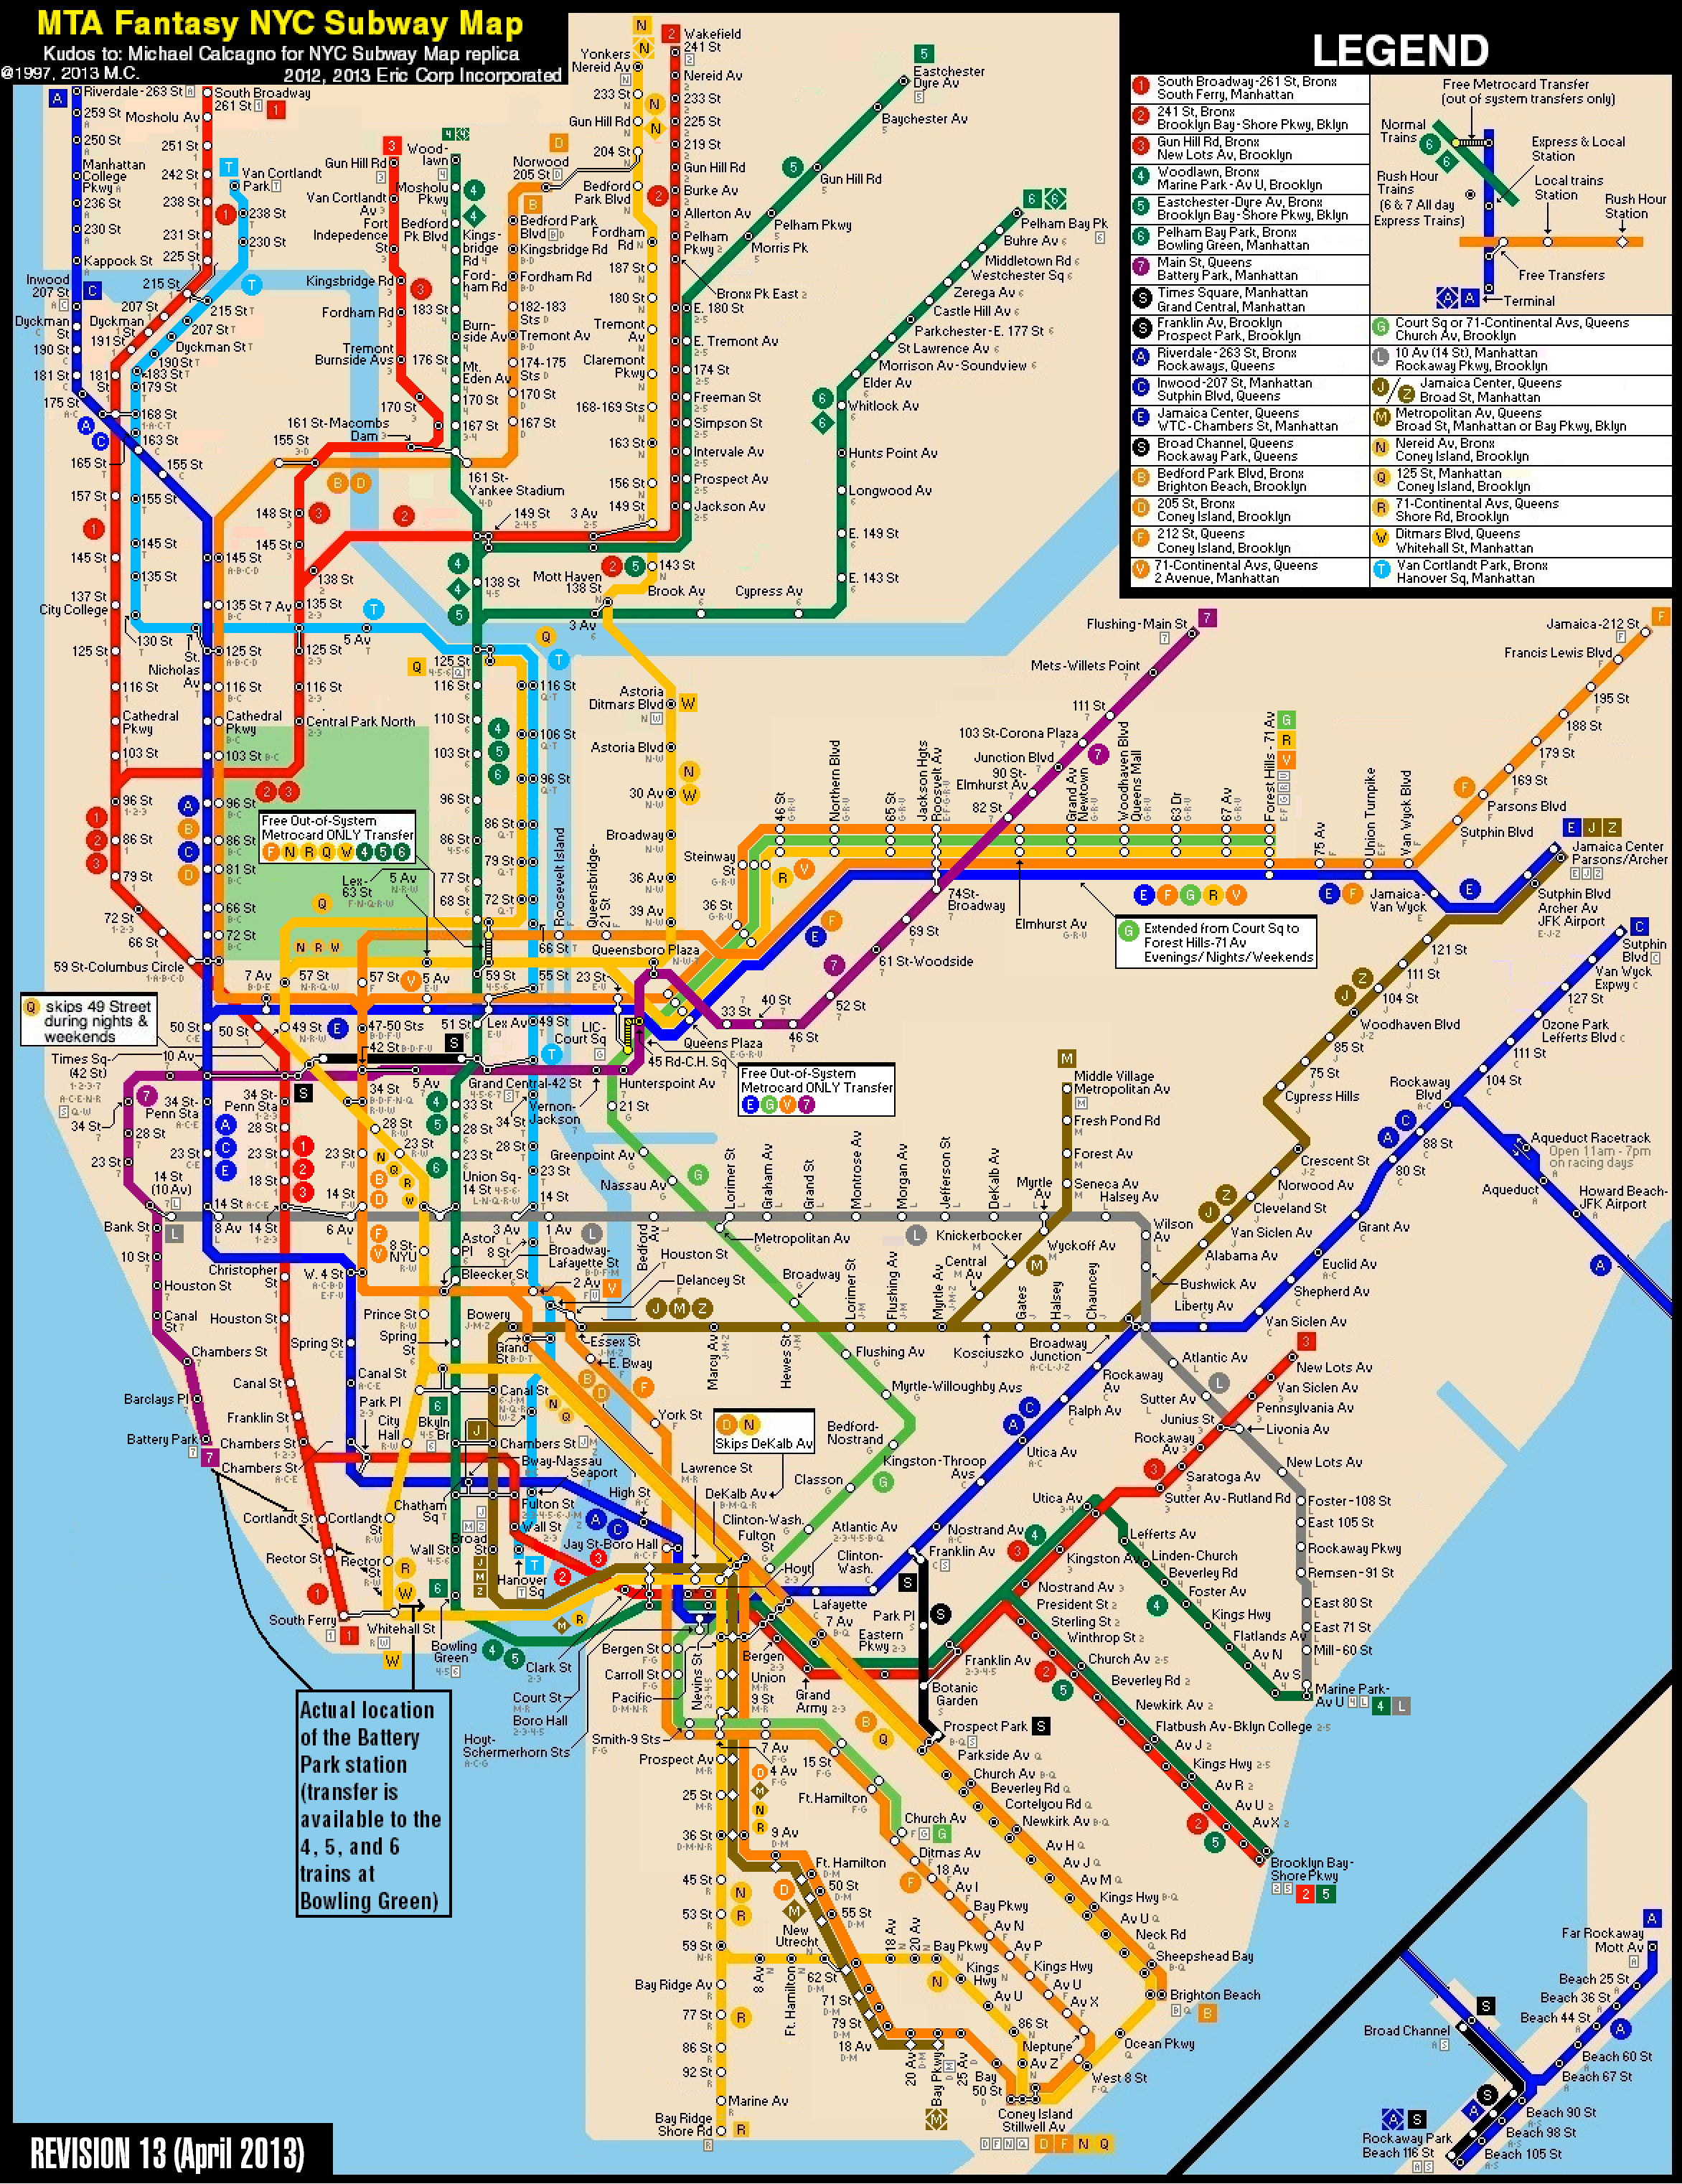 New York Subway Map | New York City Subway Fantasy Map (Revision 13 ...